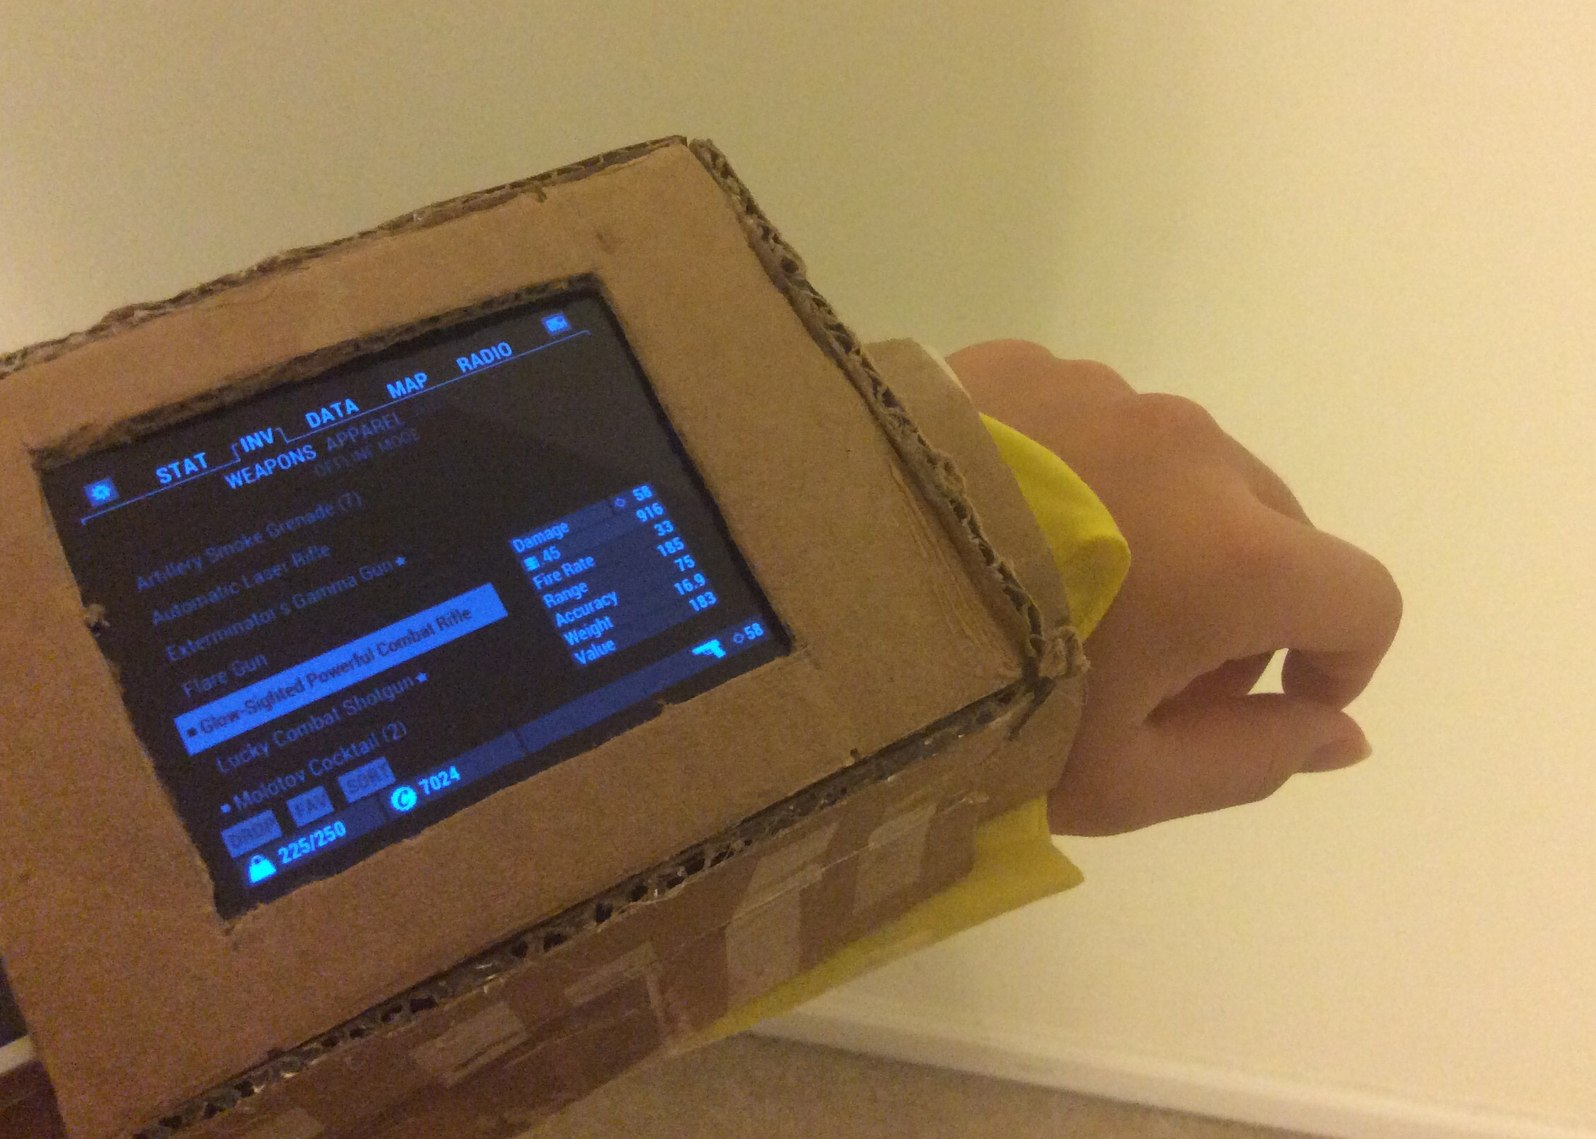 When you want a pip boy, but your on a budget - meme